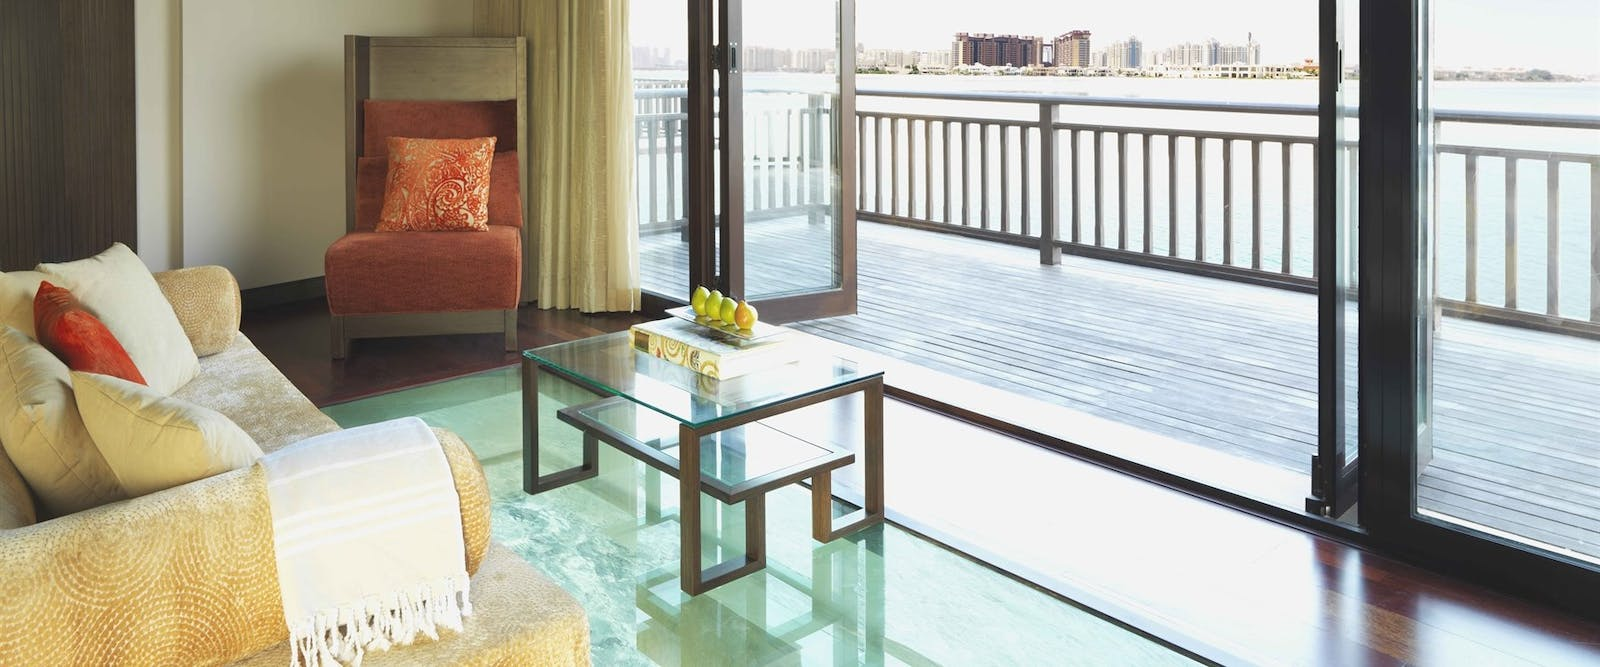 Overwater Villa Bedroom at Anantara Dubai The Palm Resort & Spa